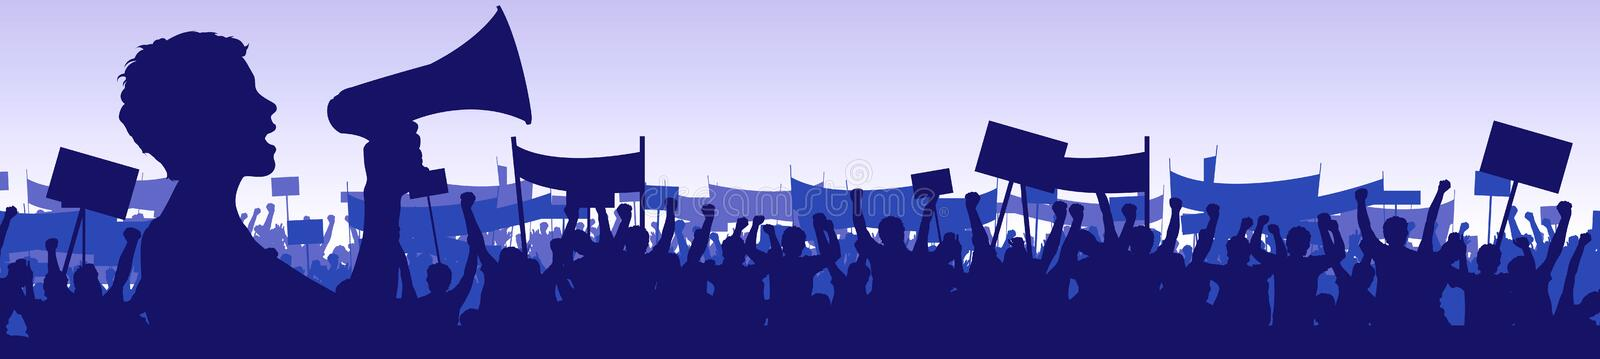 Woman leading a demonstration royalty free illustration